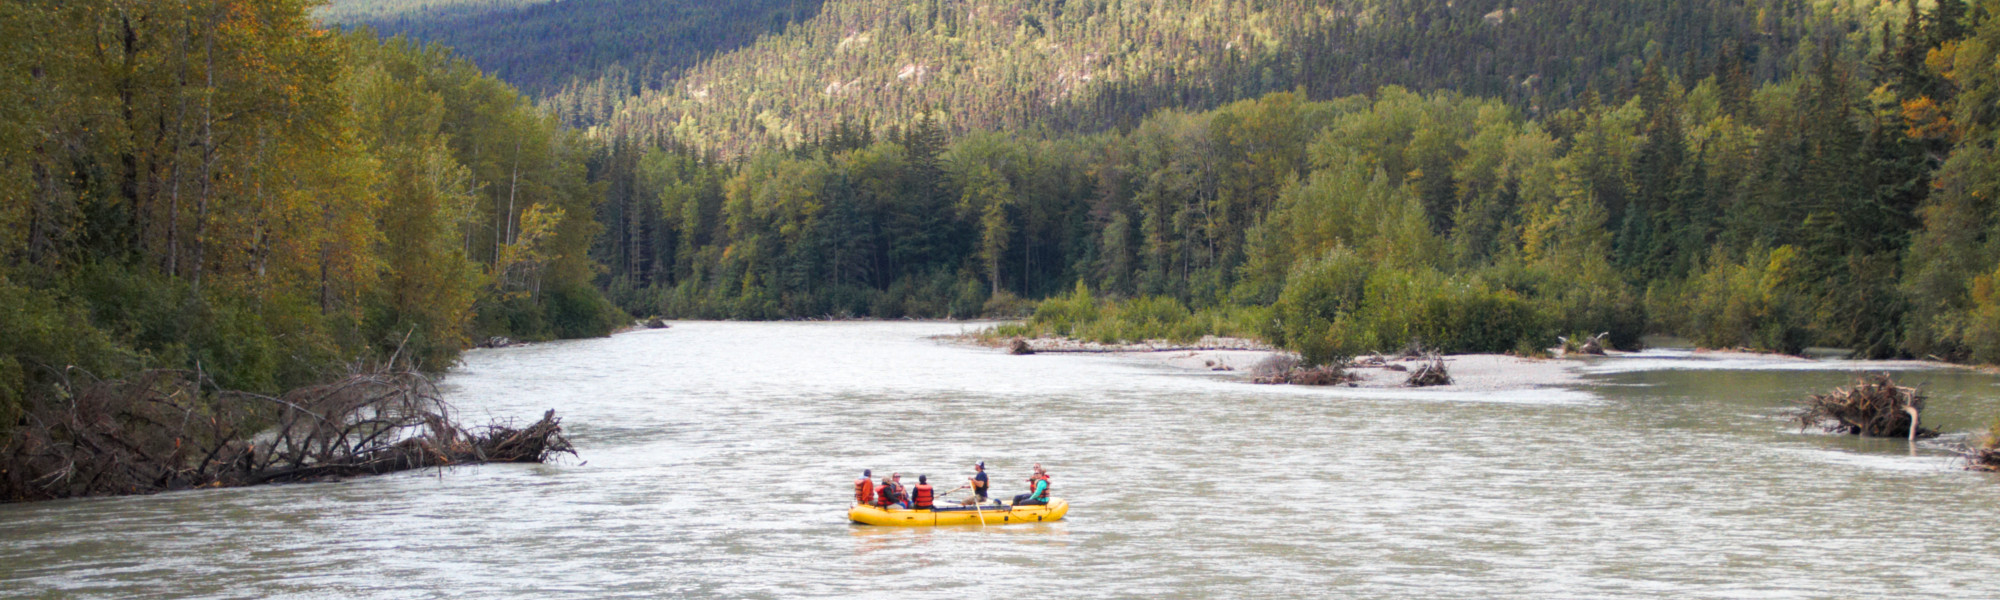 Rafting on the Taiya River alongside the historic Chilkoot Trail